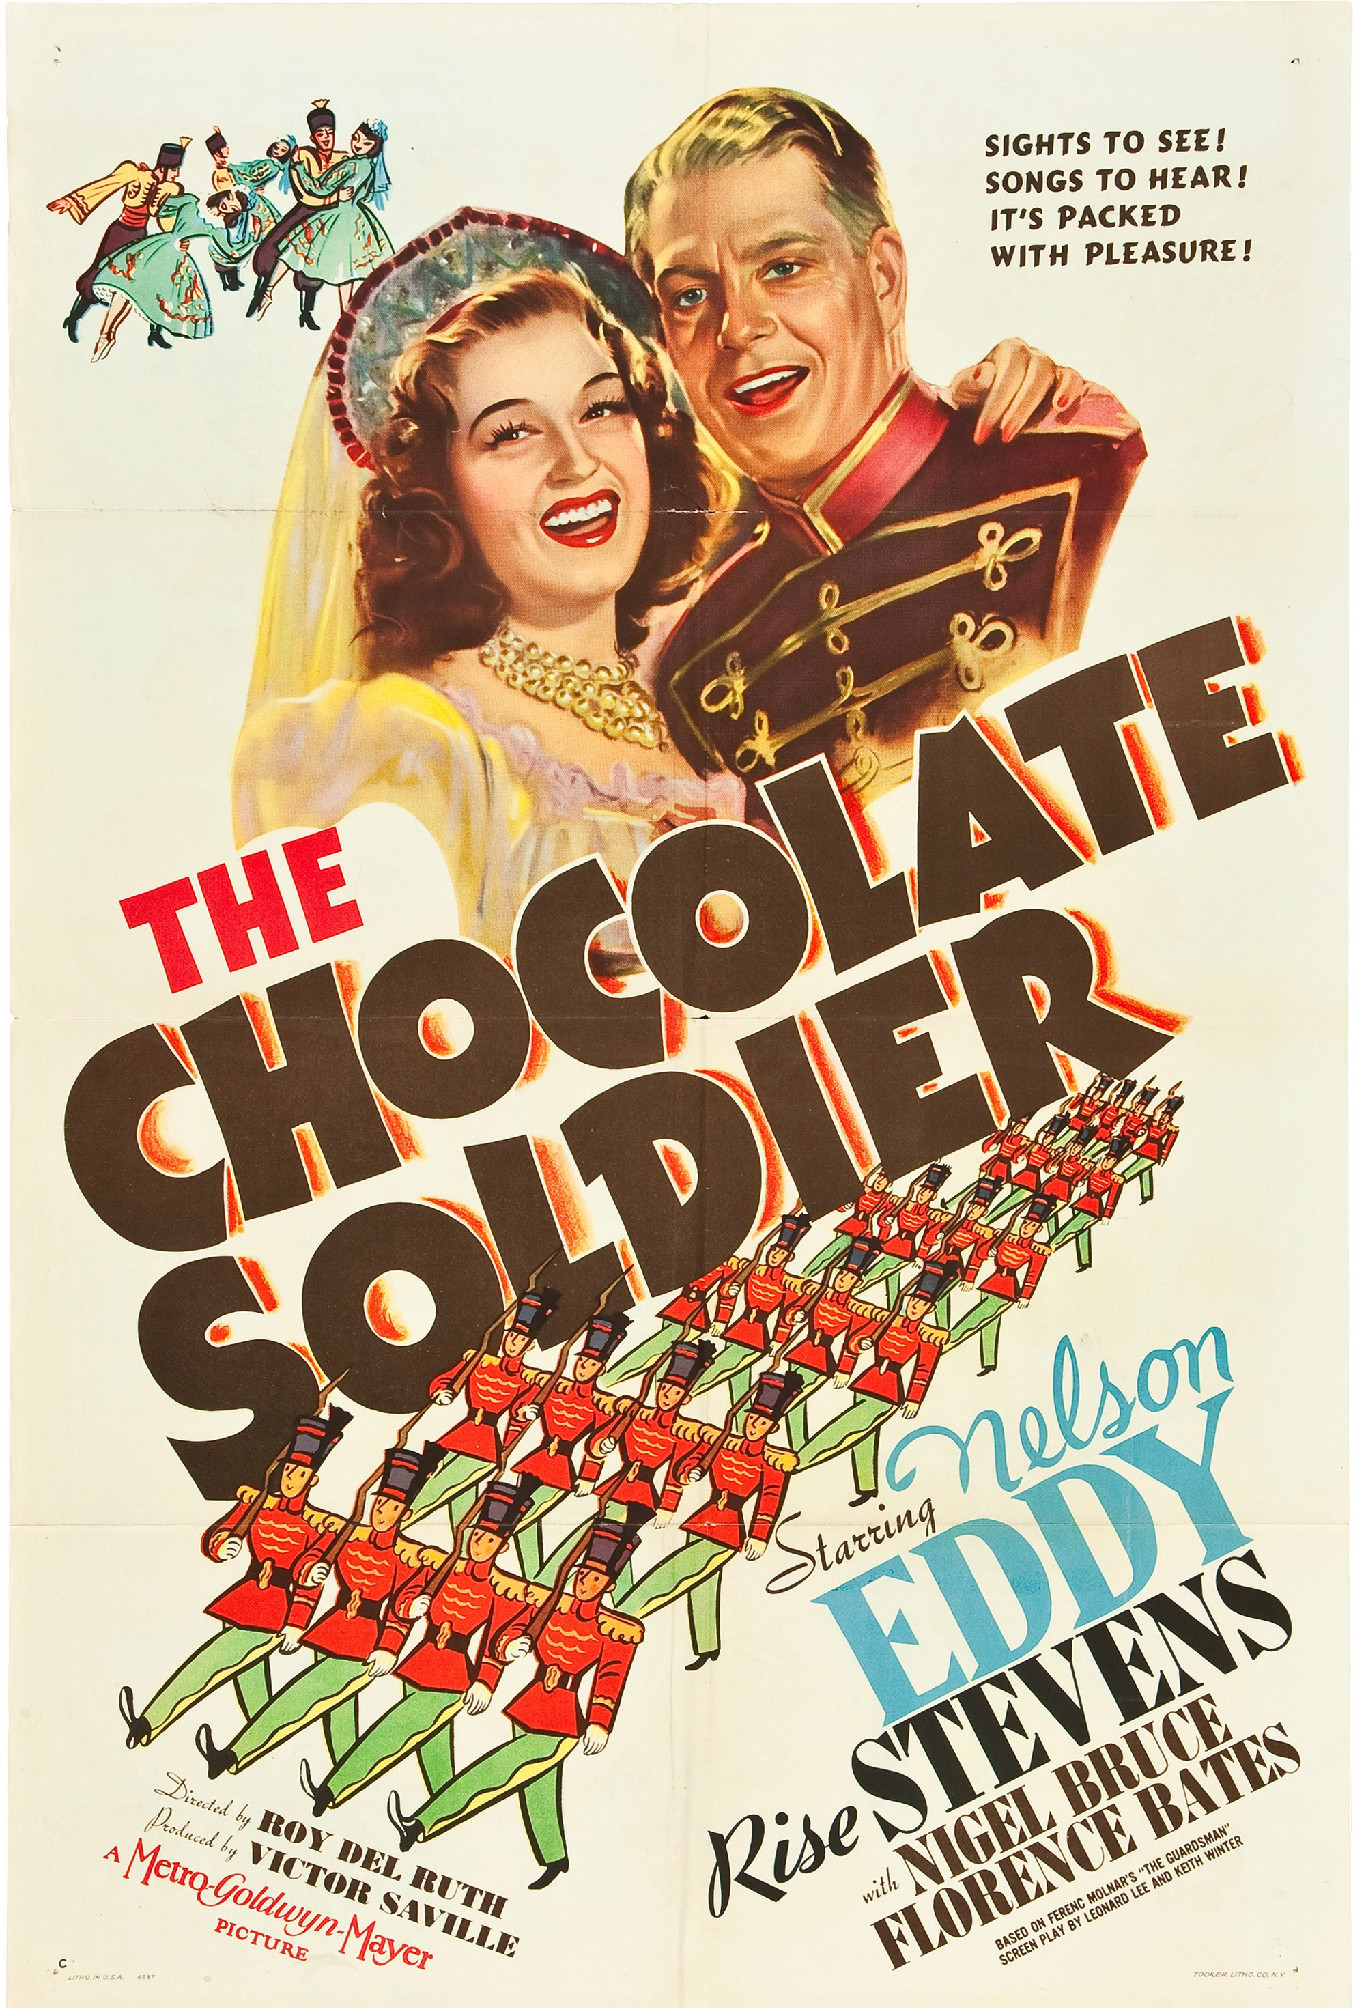 http://upload.wikimedia.org/wikipedia/en/9/91/The_Chocolate_Soldier_FilmPoster.jpeg